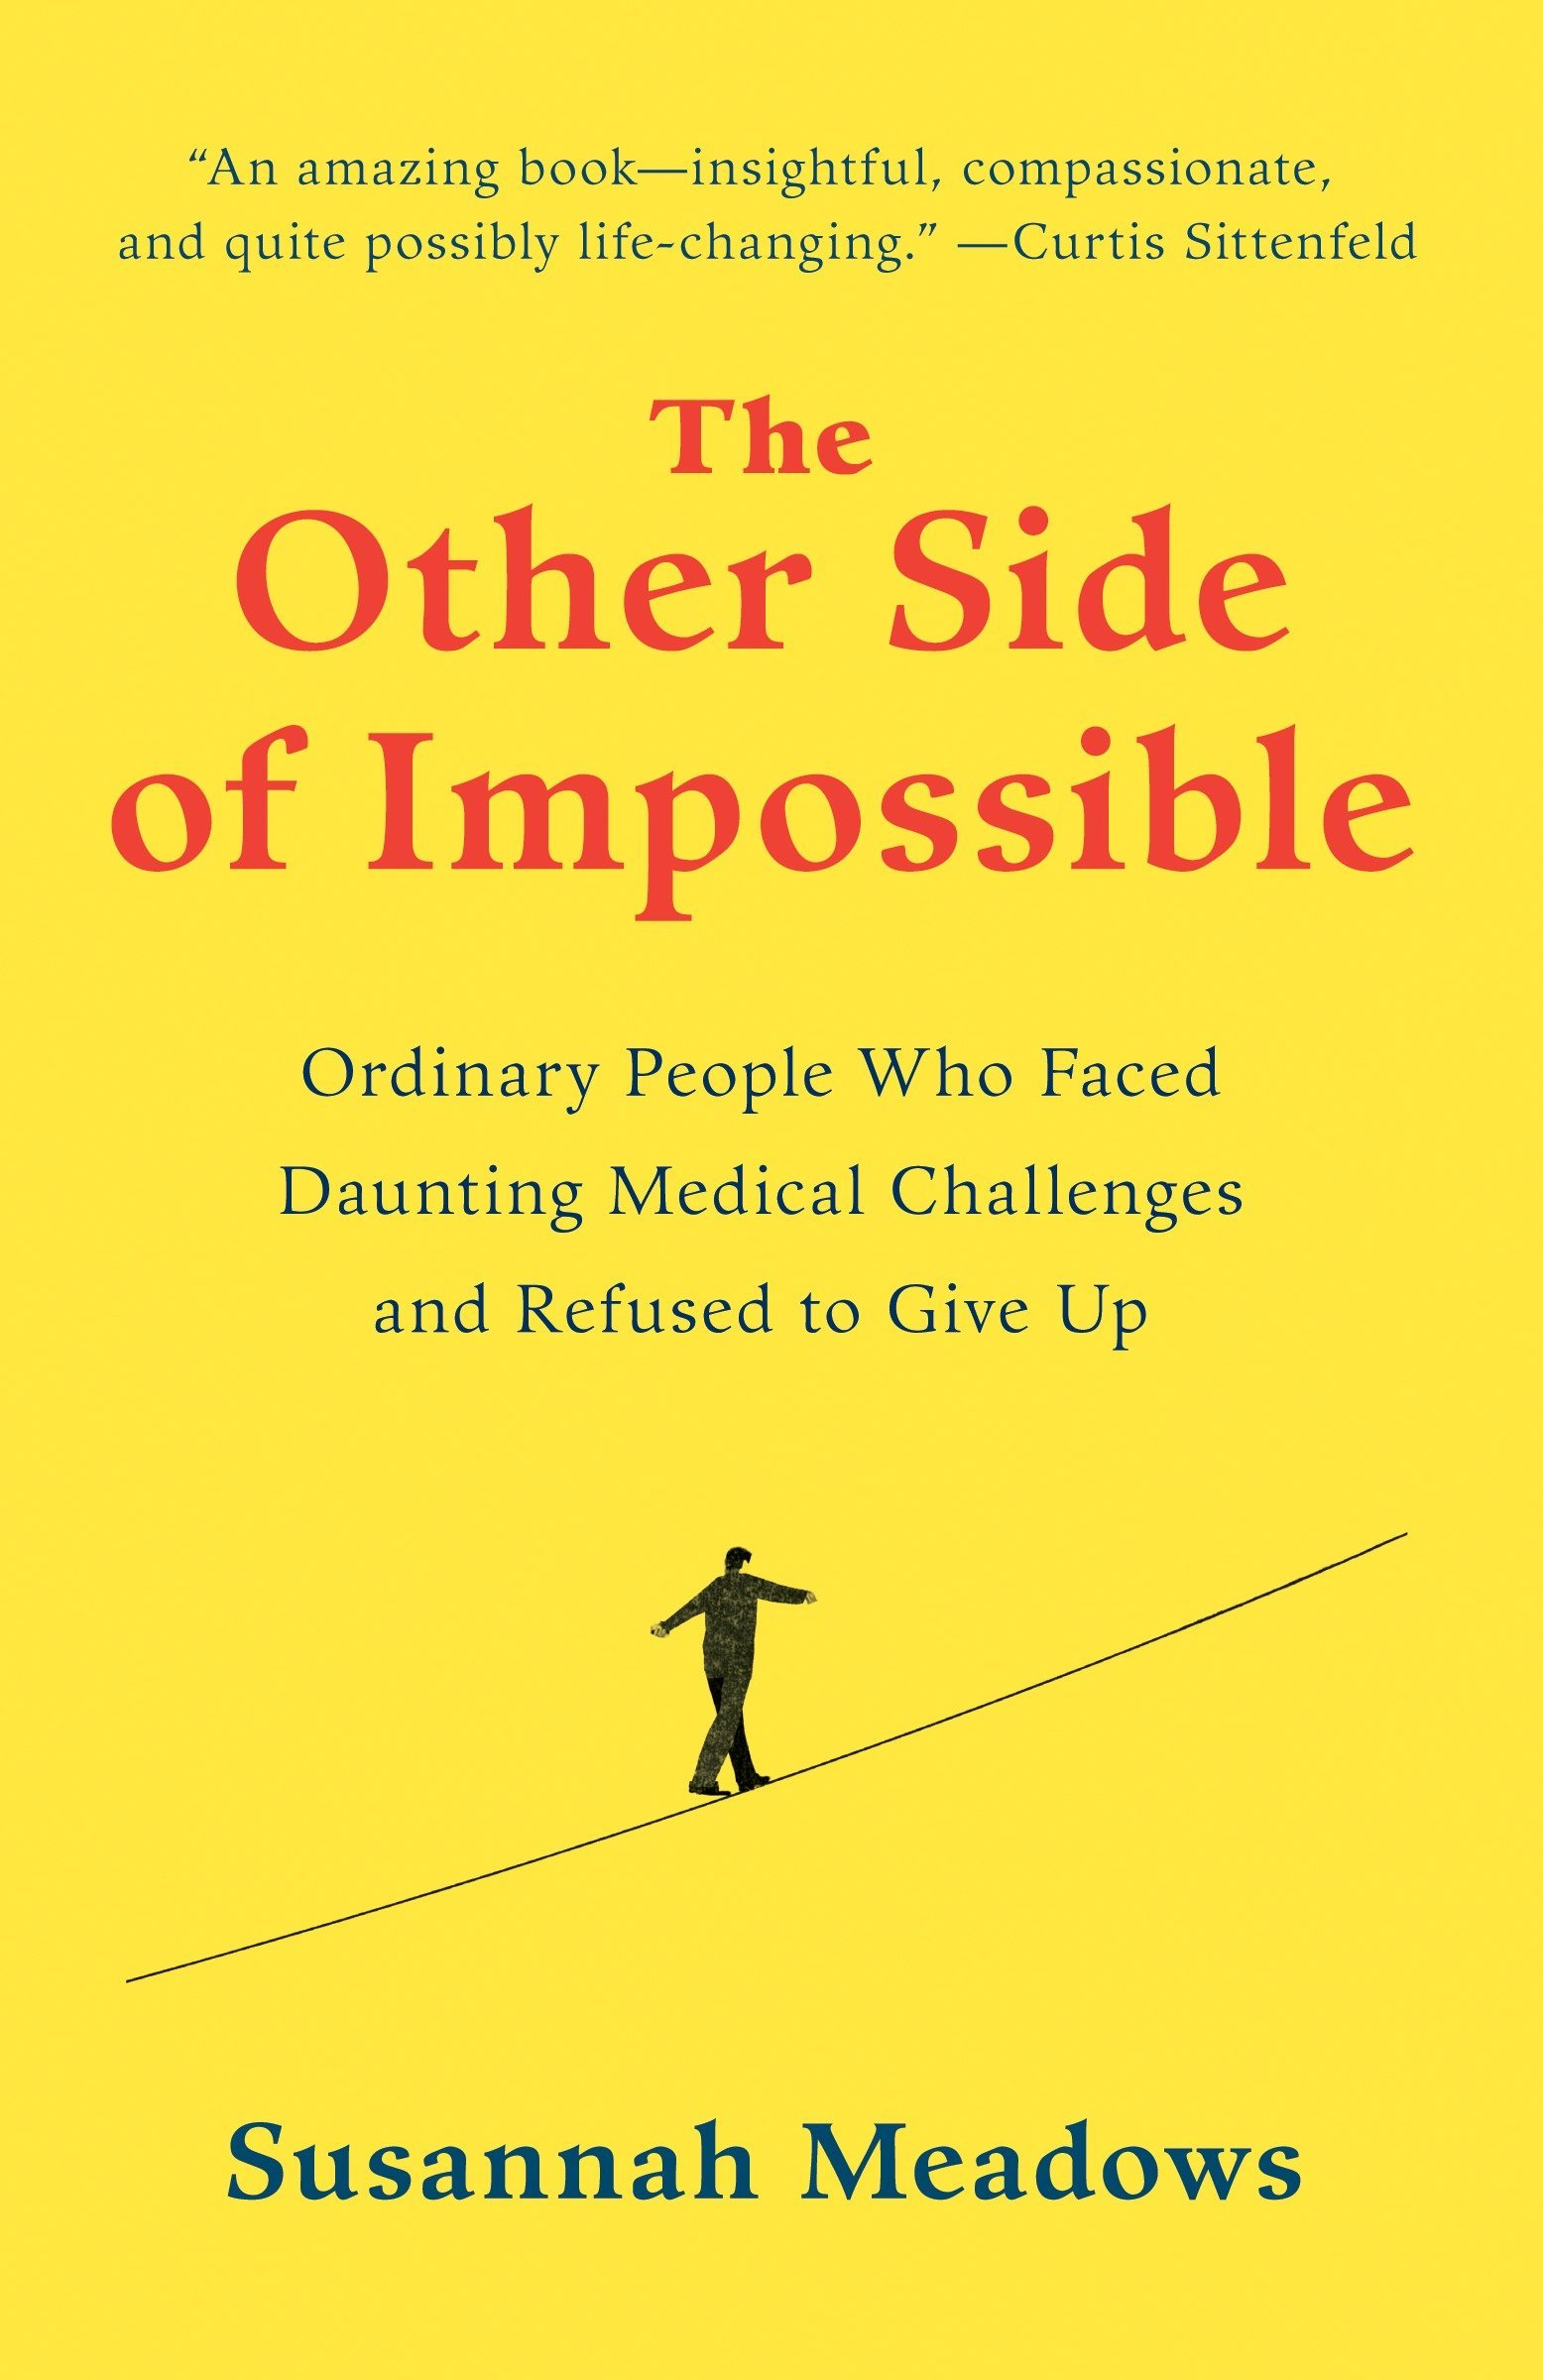 The Other Side of Impossible: Ordinary People Who Faced Daunting Medical Challenges and Refused to Give Up Paperback – February 13, 2018 Susannah Meadows Random House Trade Paperbacks 0812996488 Healing